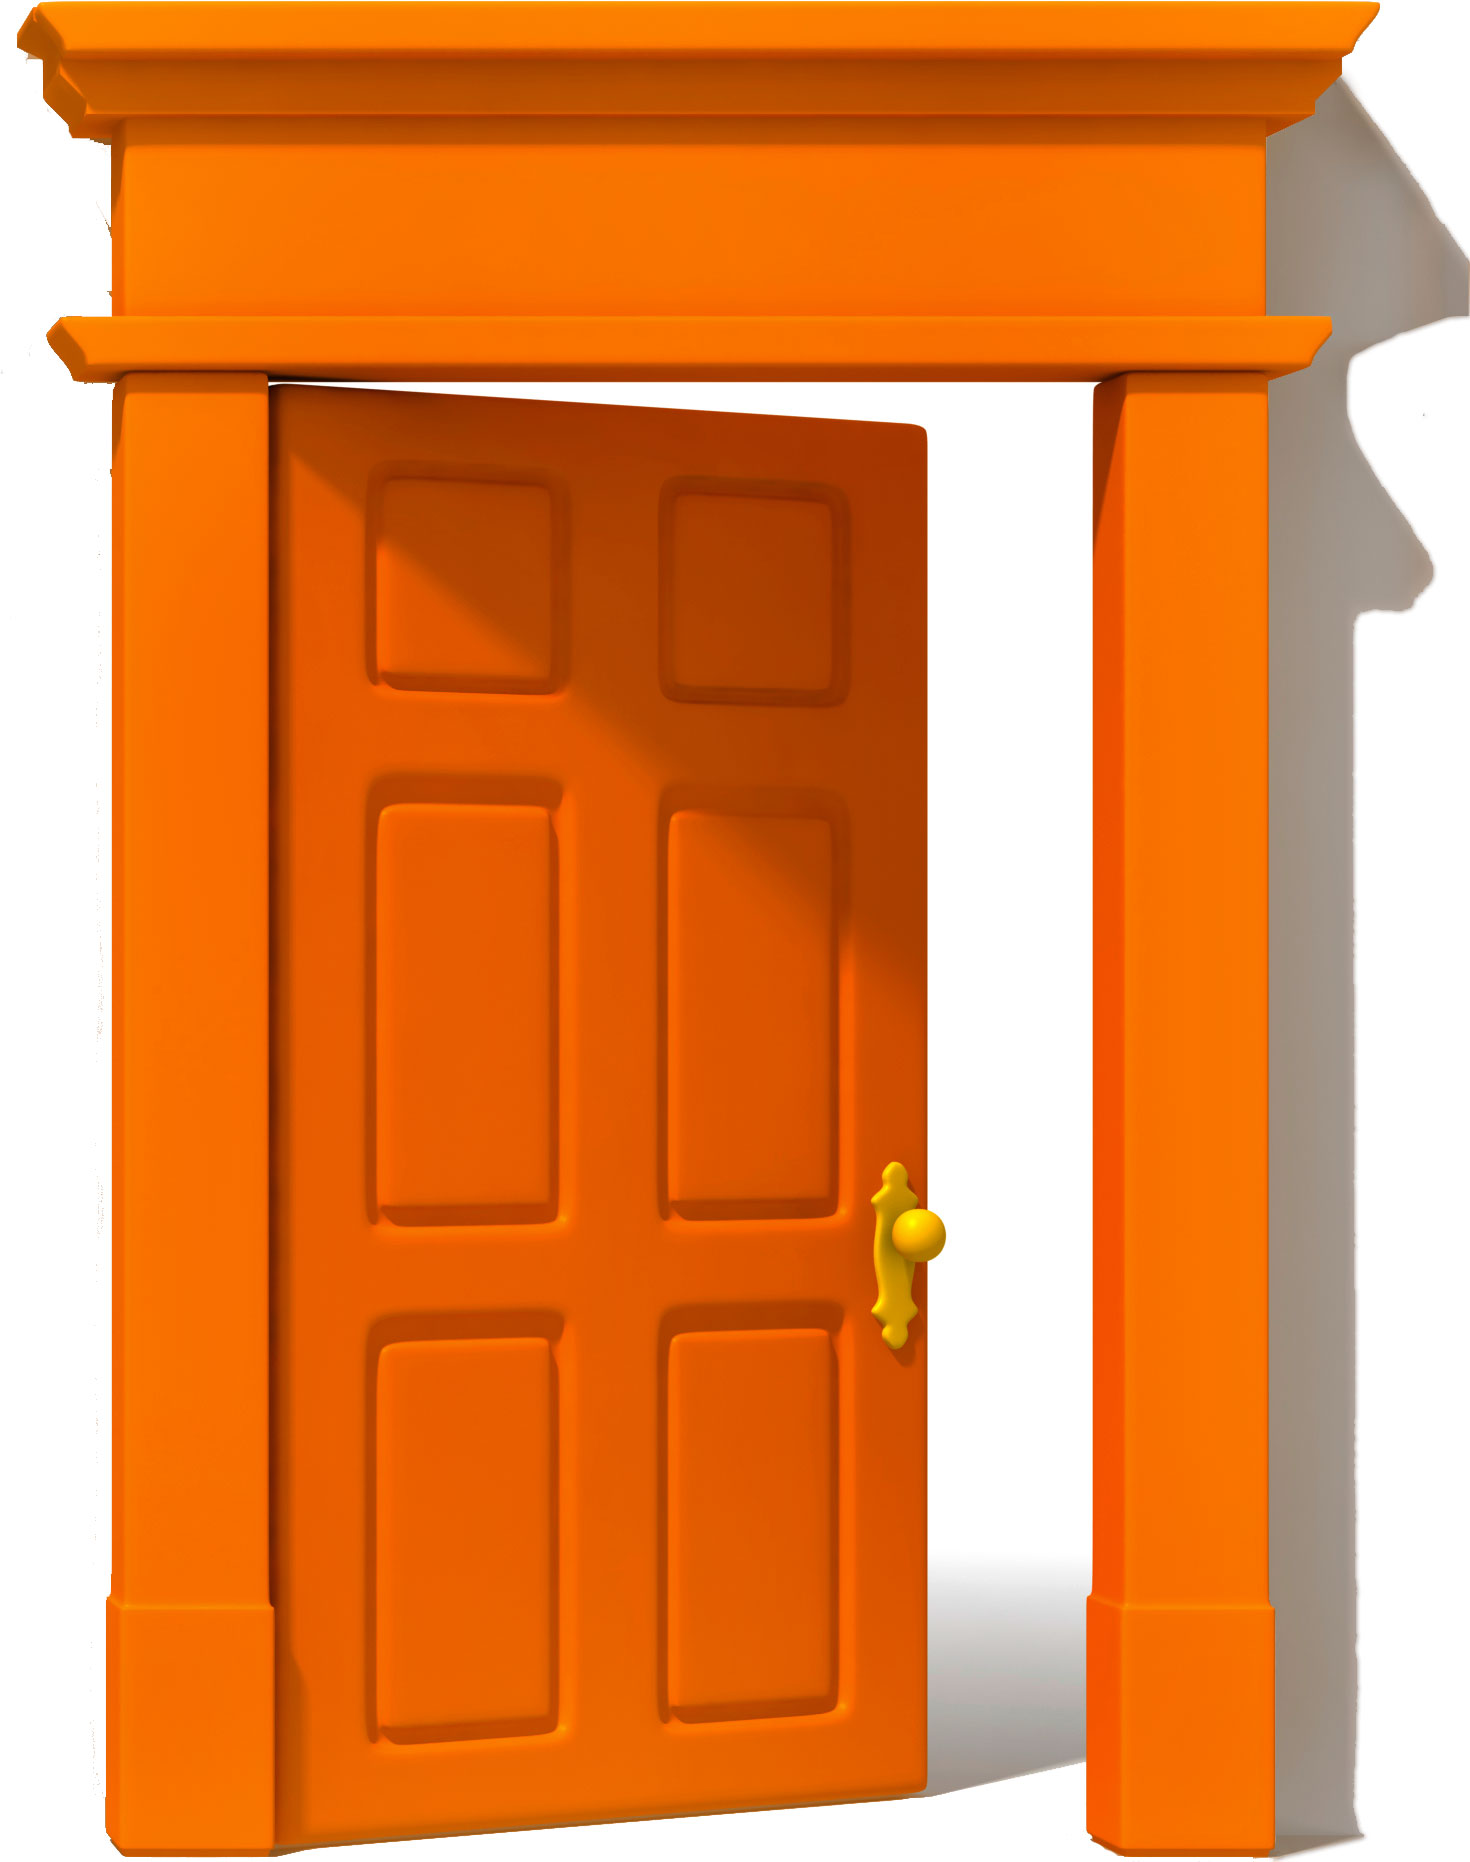 Door clipart orange door. Osu alumni association life